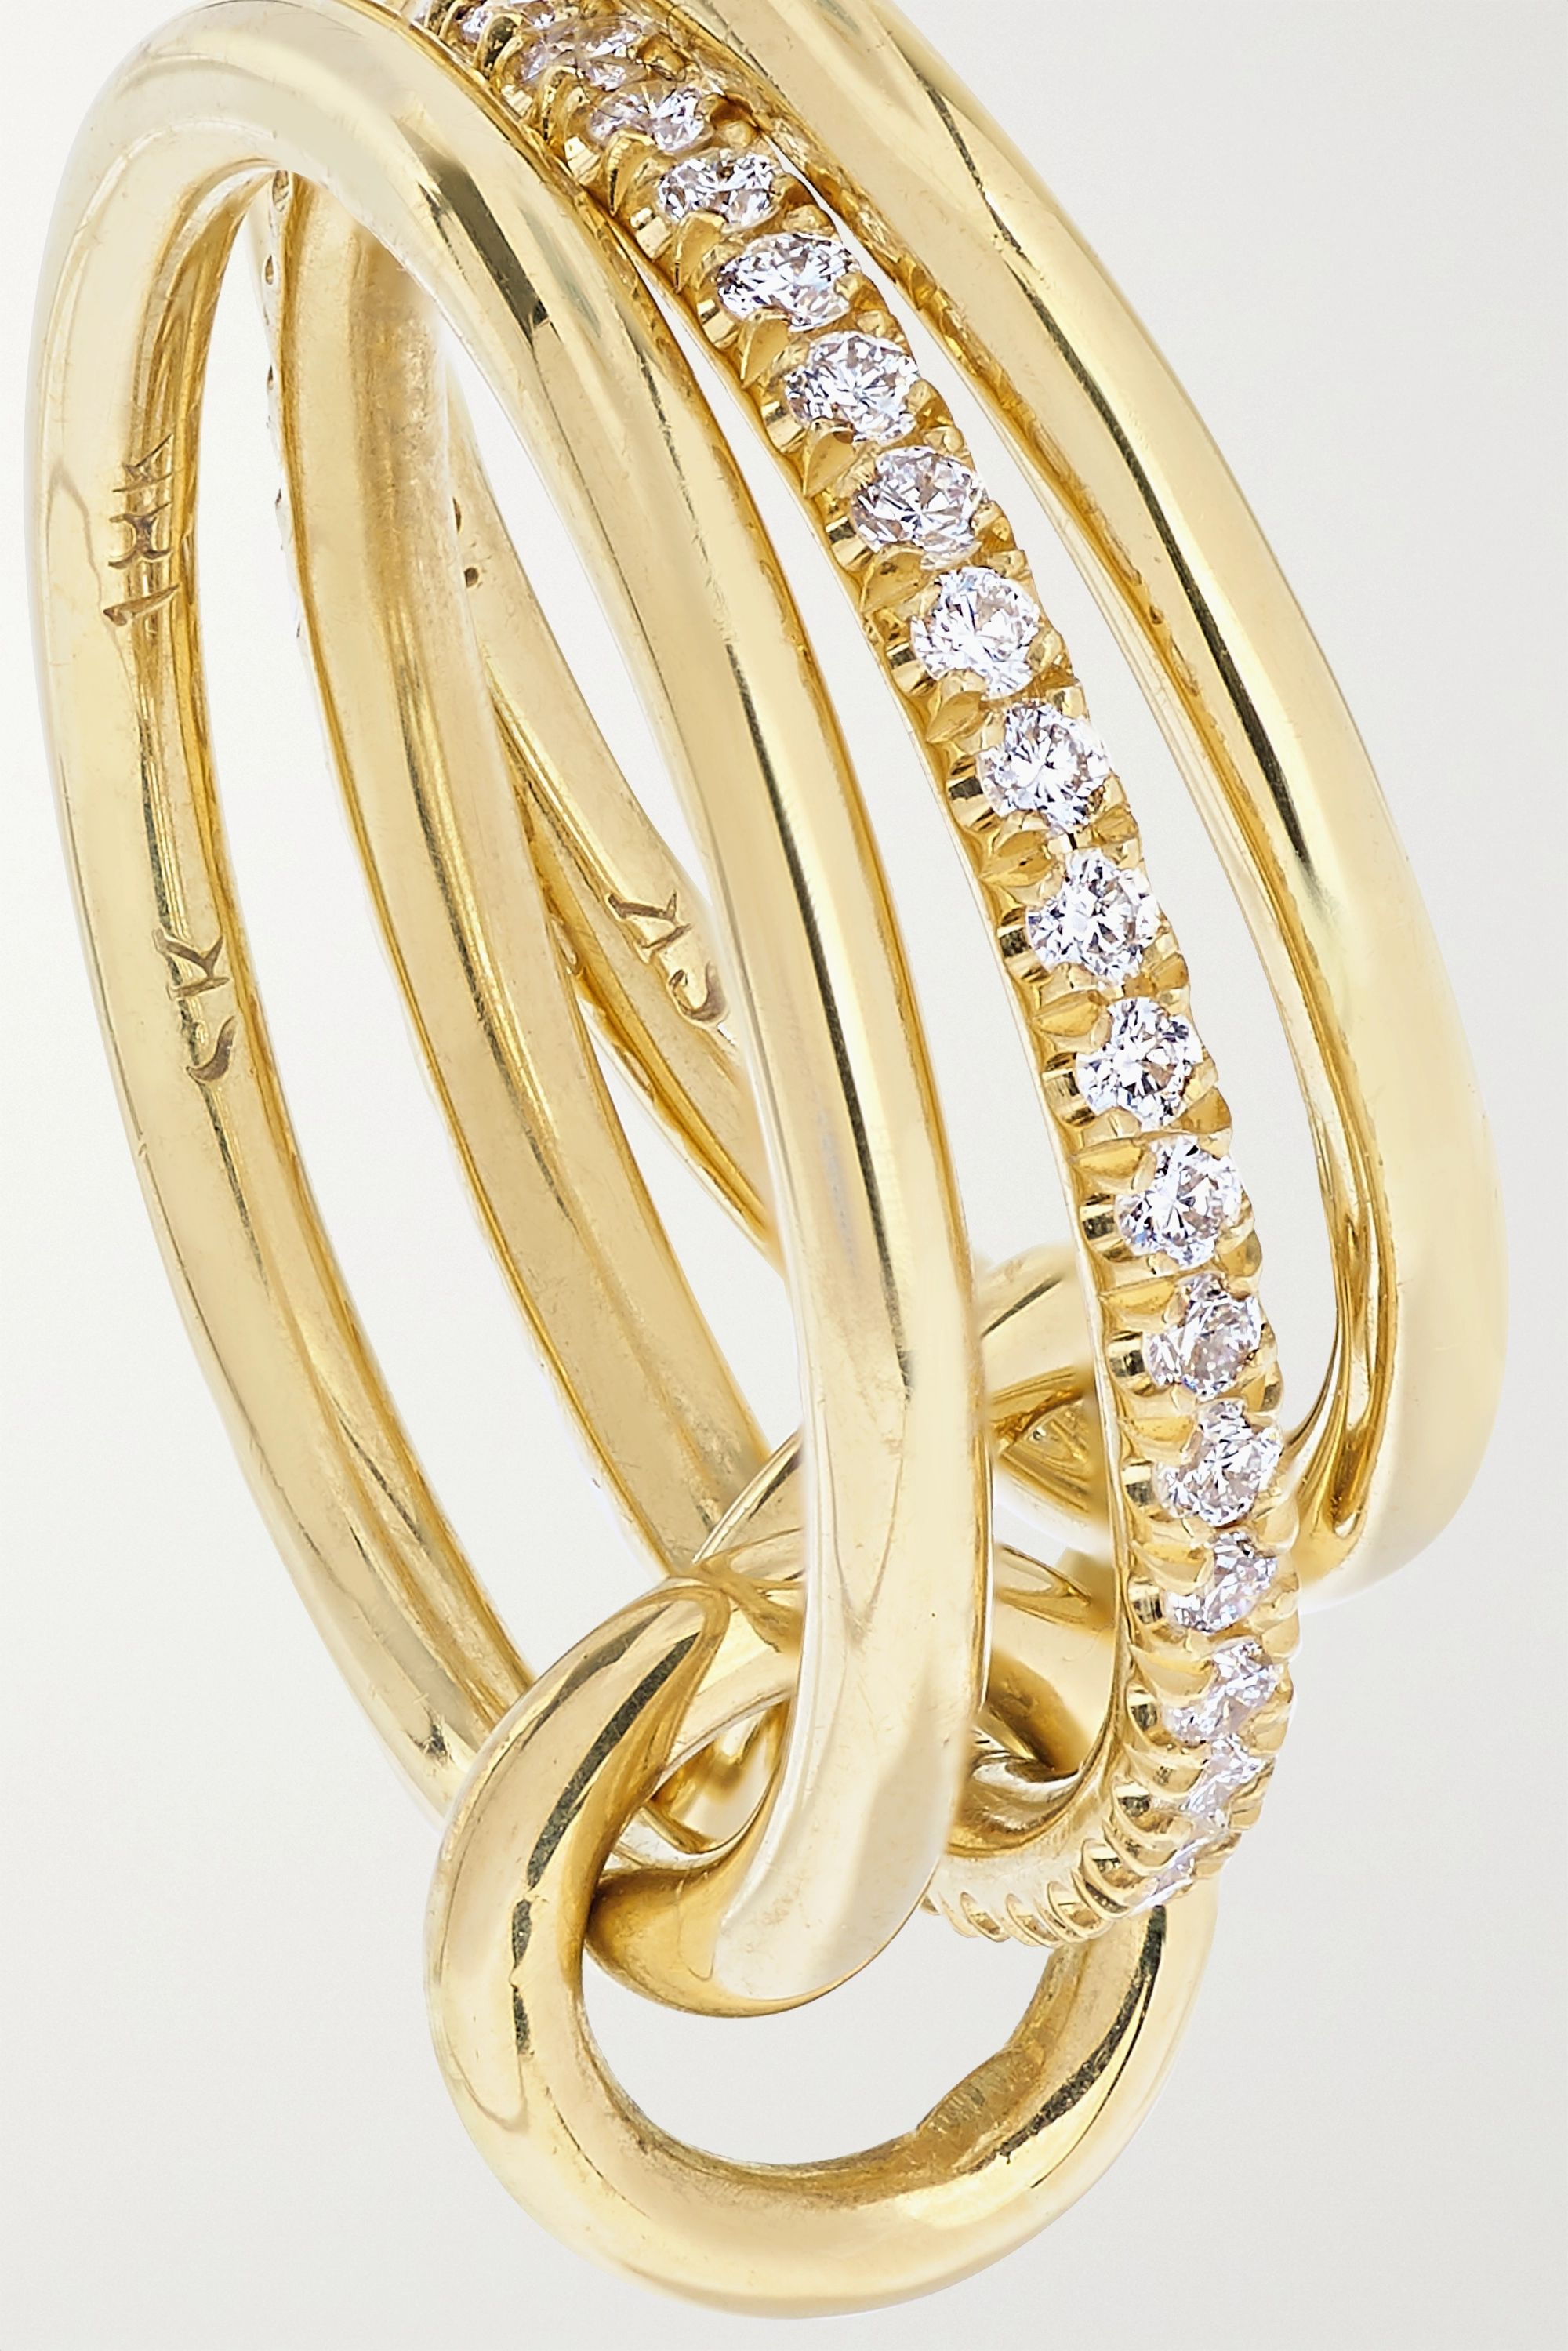 Spinelli Kilcollin Sonny set of three 18-karat gold diamond rings